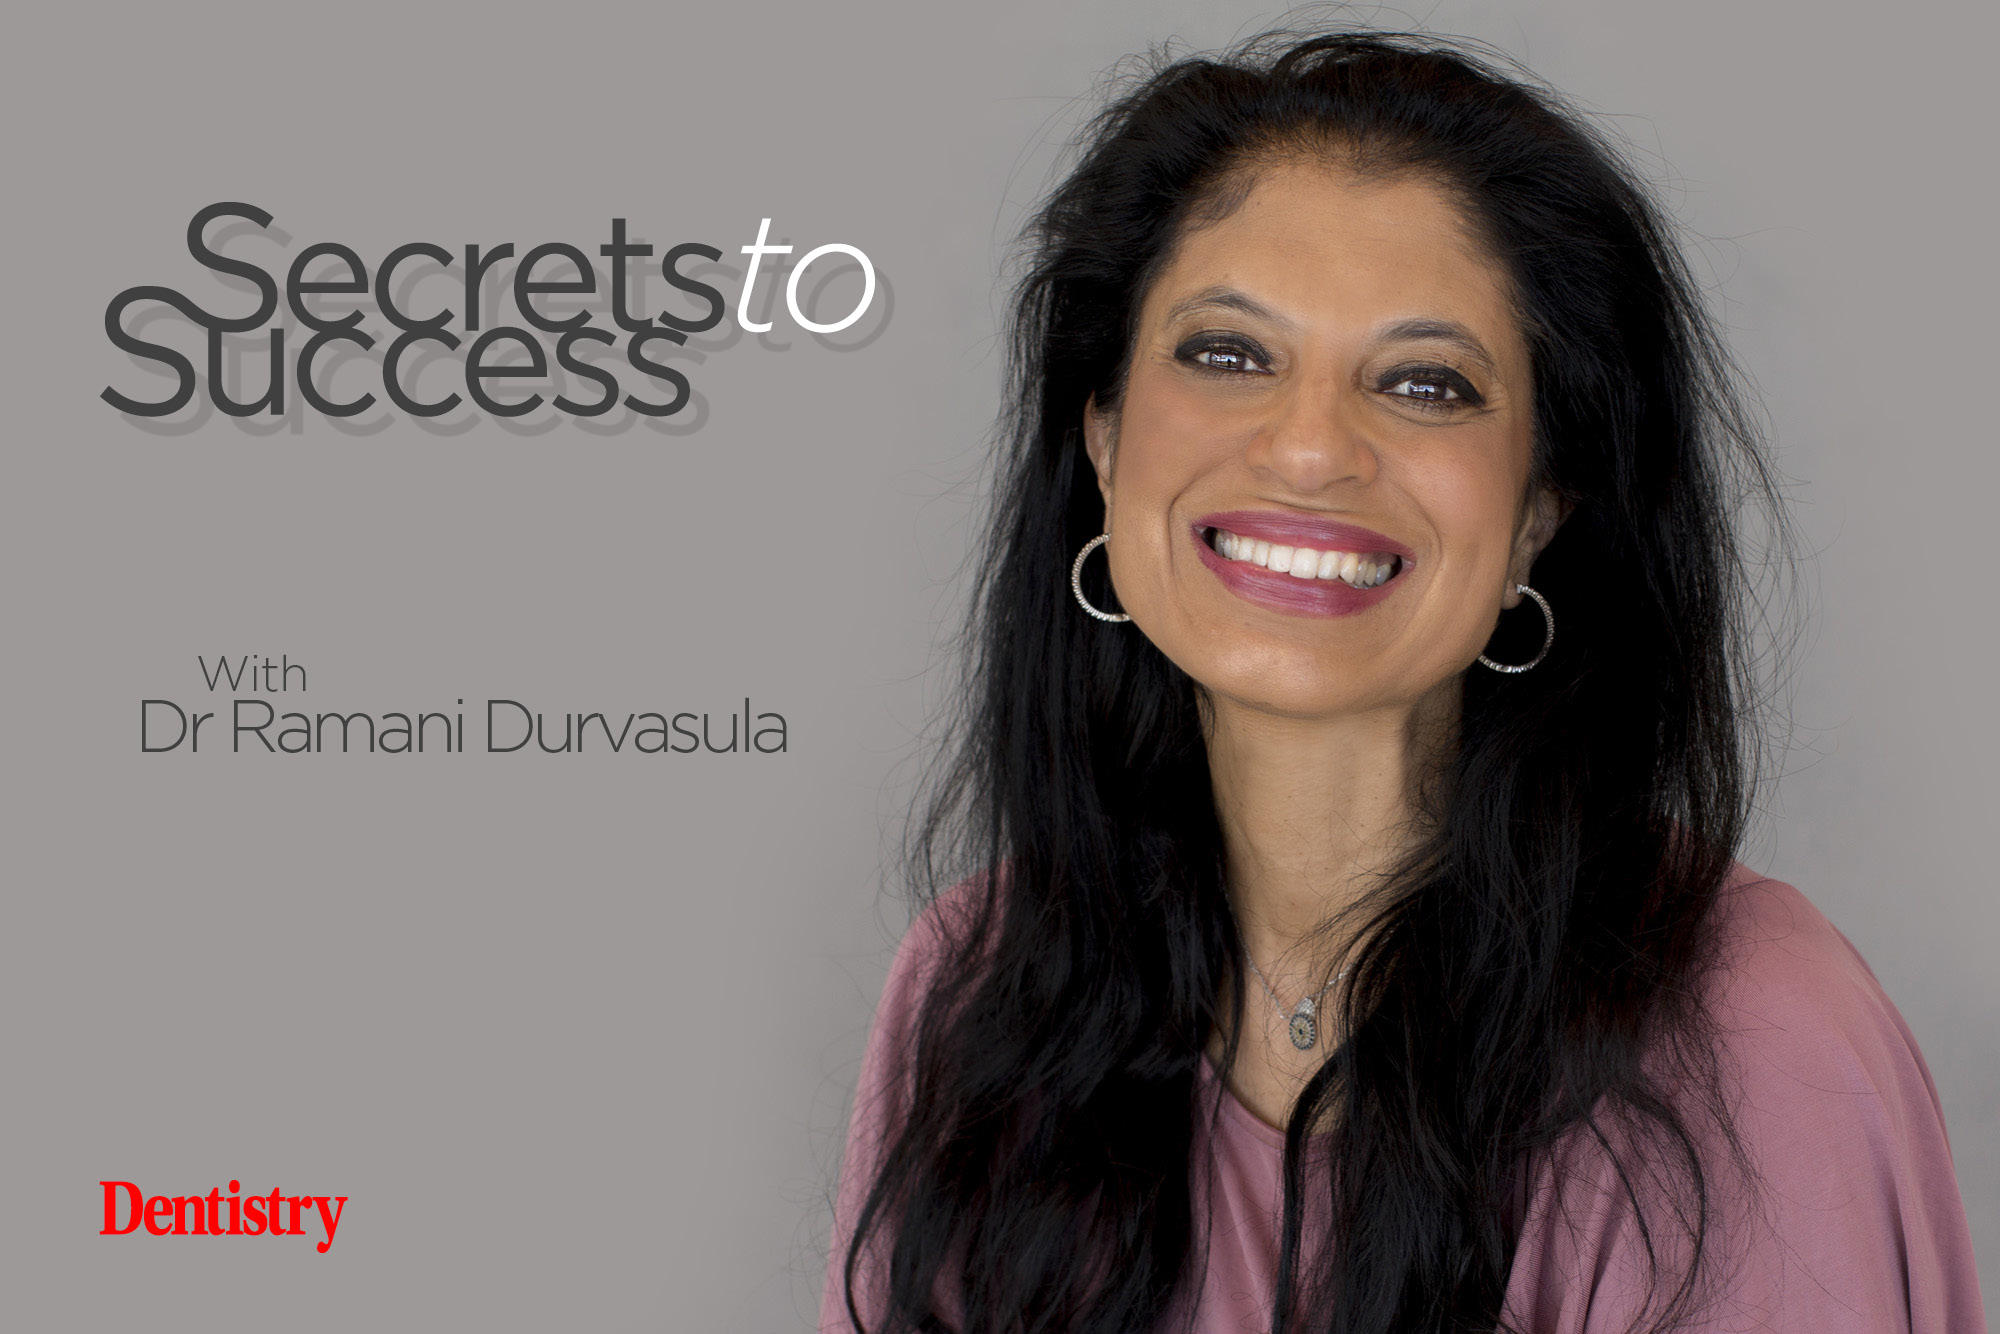 Jana Denzel talks to Dr Ramani Durvasula about her journey into psychology and her top tips for helping nervous patients